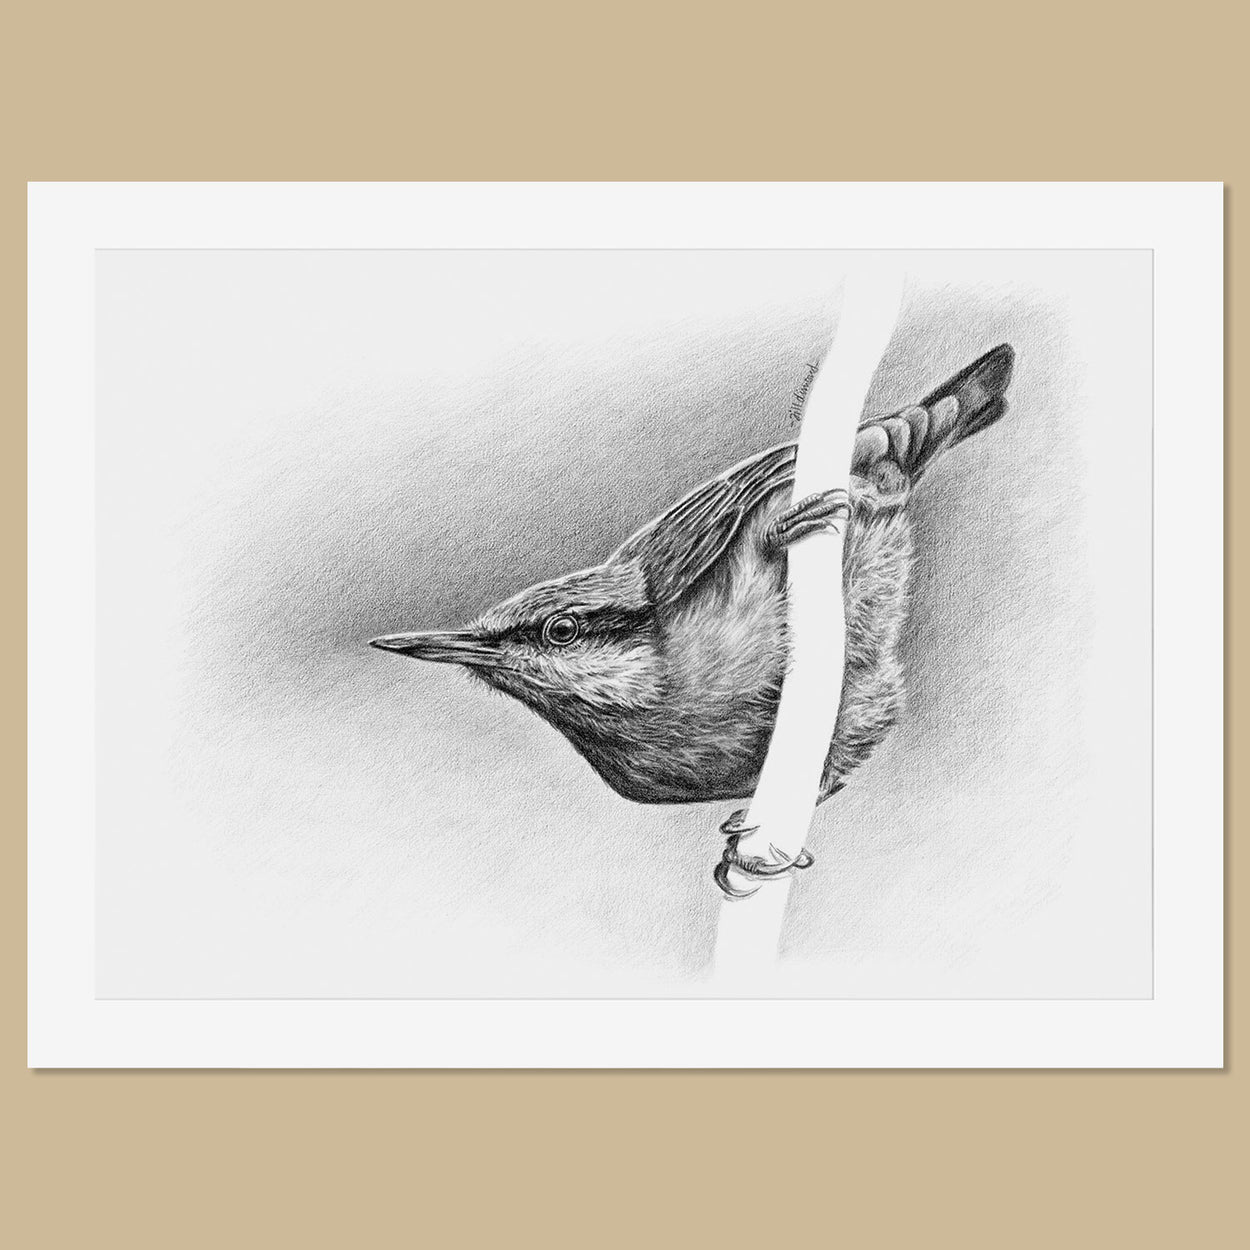 Original Nuthatch Pencil Drawing - The Thriving Wild - Jill Dimond